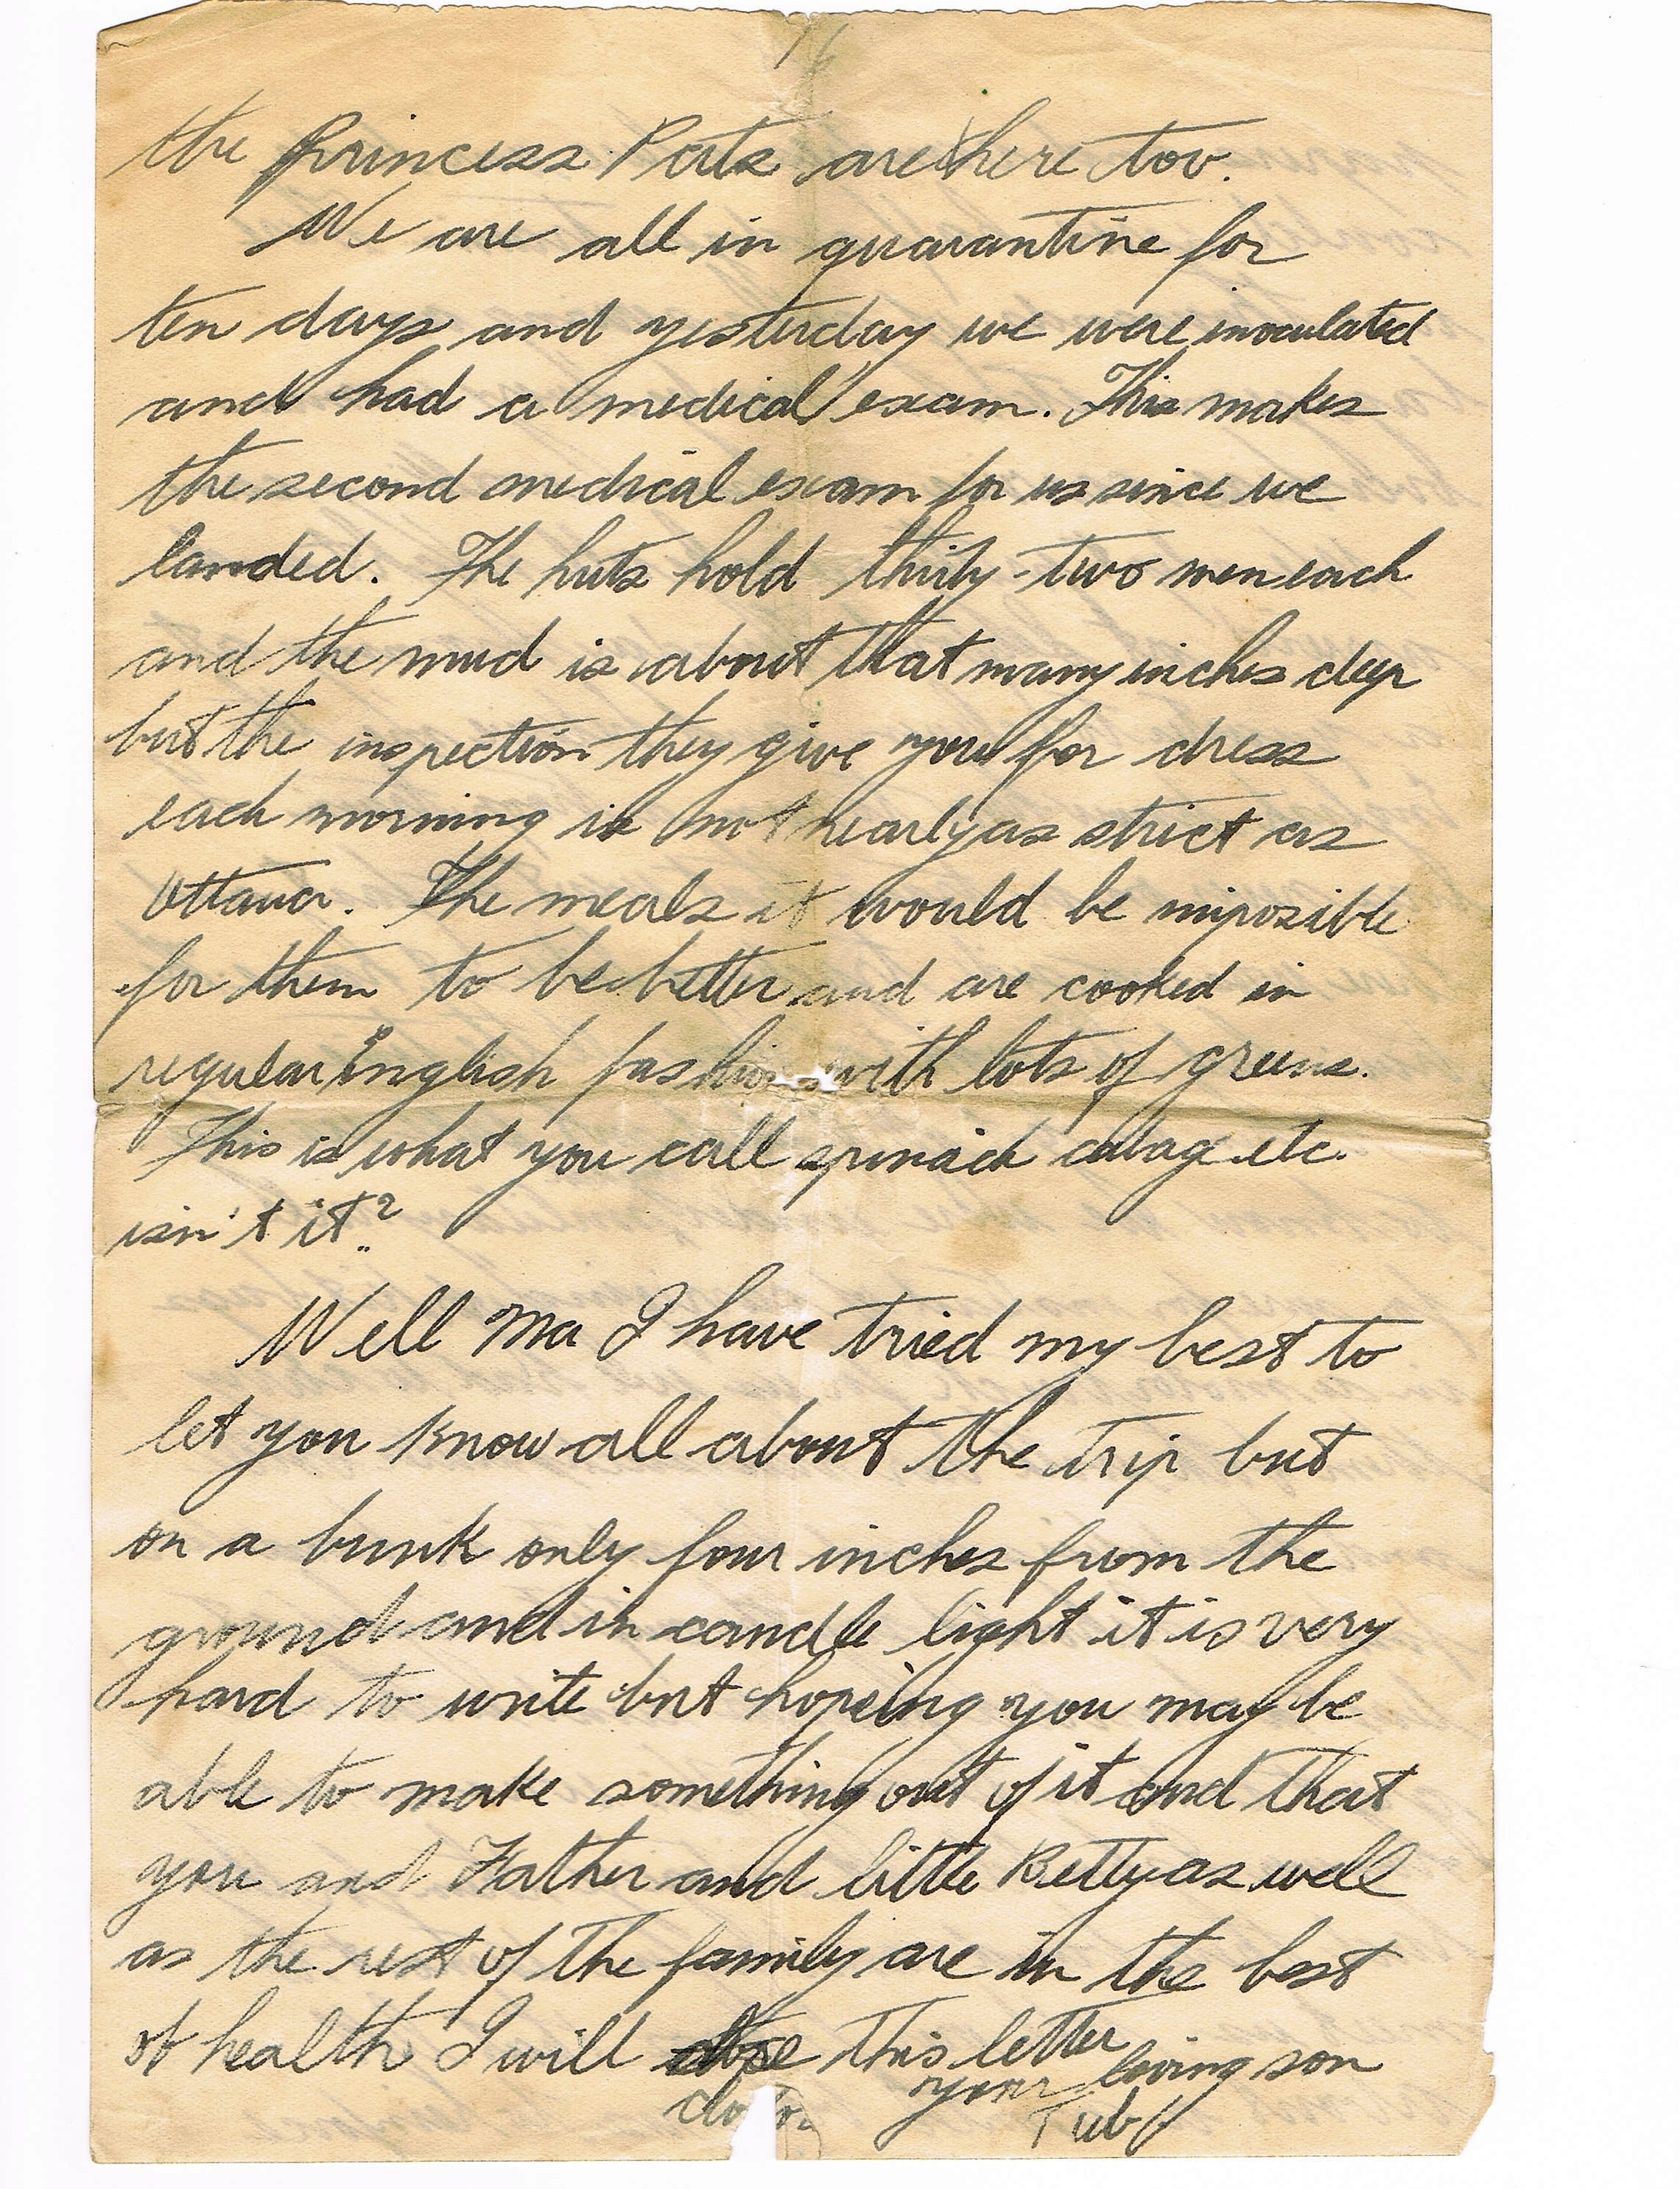 16th page of handwritten letter